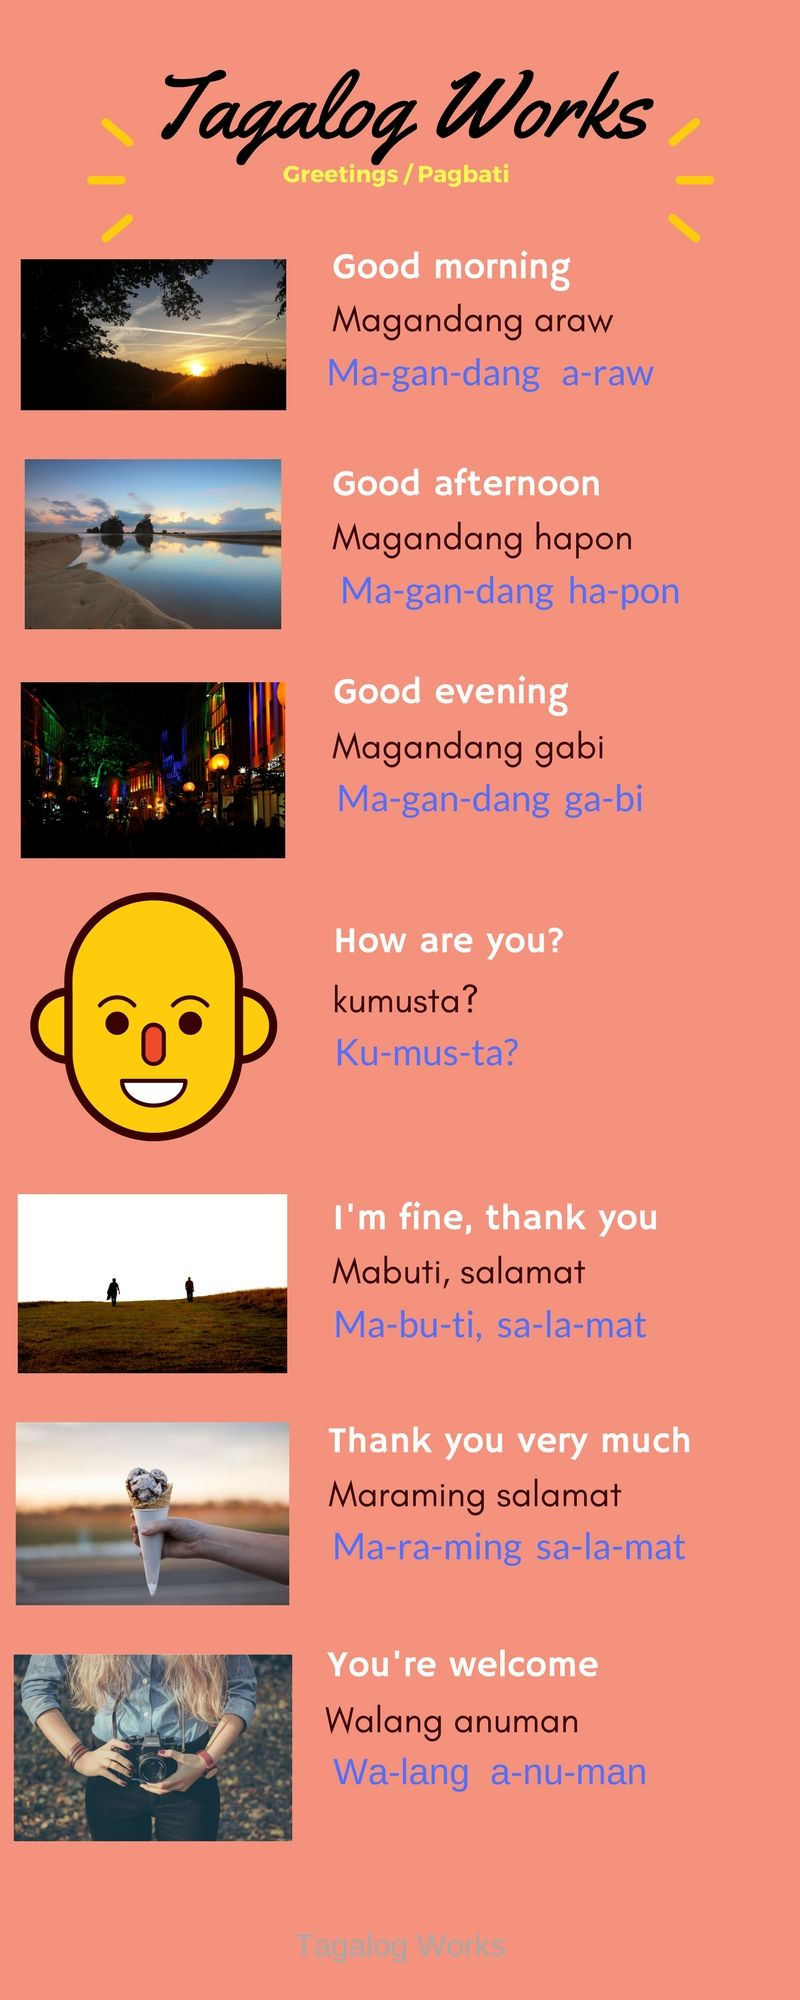 Pin By Tagalog Works On Conversations In Tagalog Pinterest Tagalog